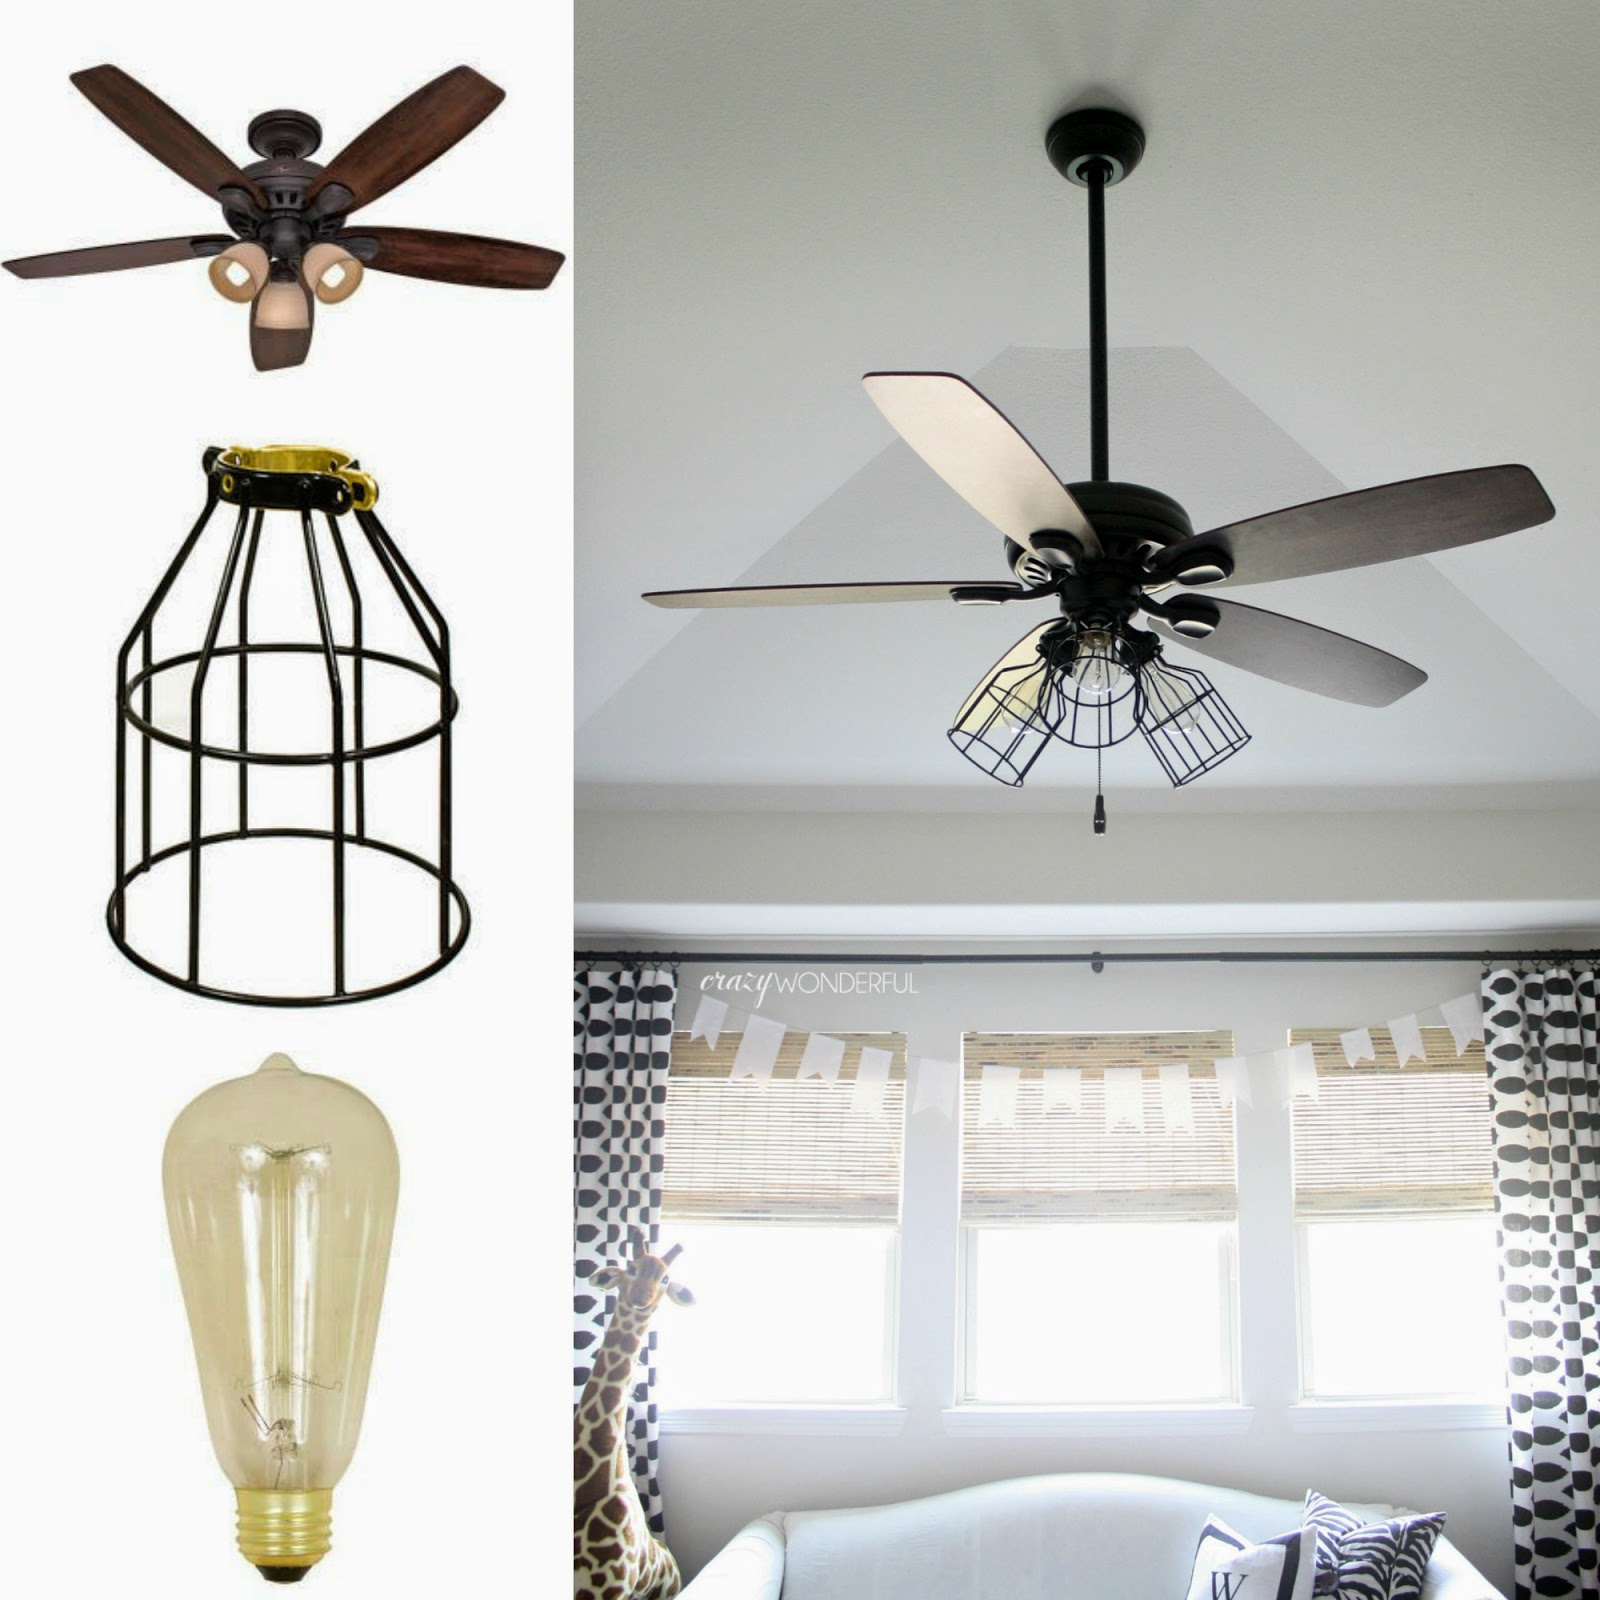 DIY cage light ceiling fan Crazy Wonderful : industrialfanDIY from www.crazy-wonderful.com size 1600 x 1600 jpeg 237kB